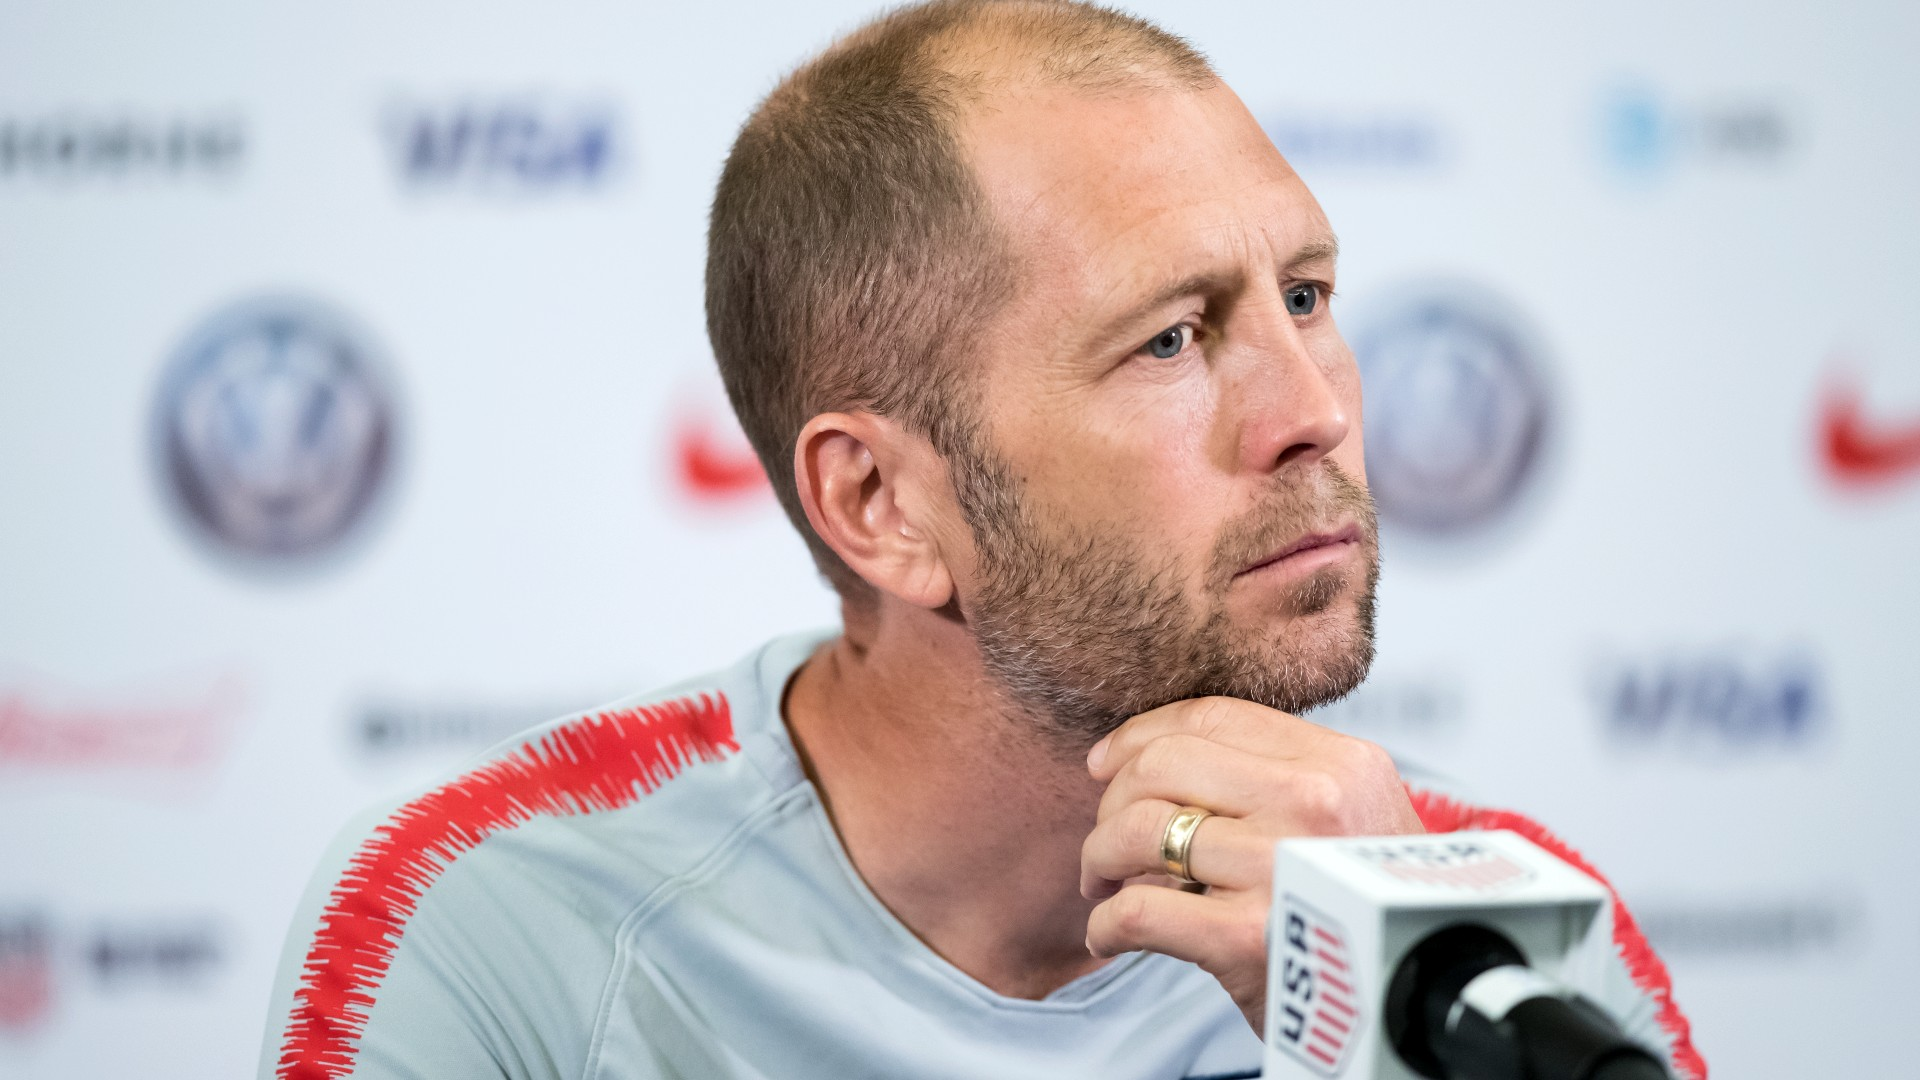 Faulting USMNT head coach Gregg Berhalter for Panama loss? It'a stretch & overreaction